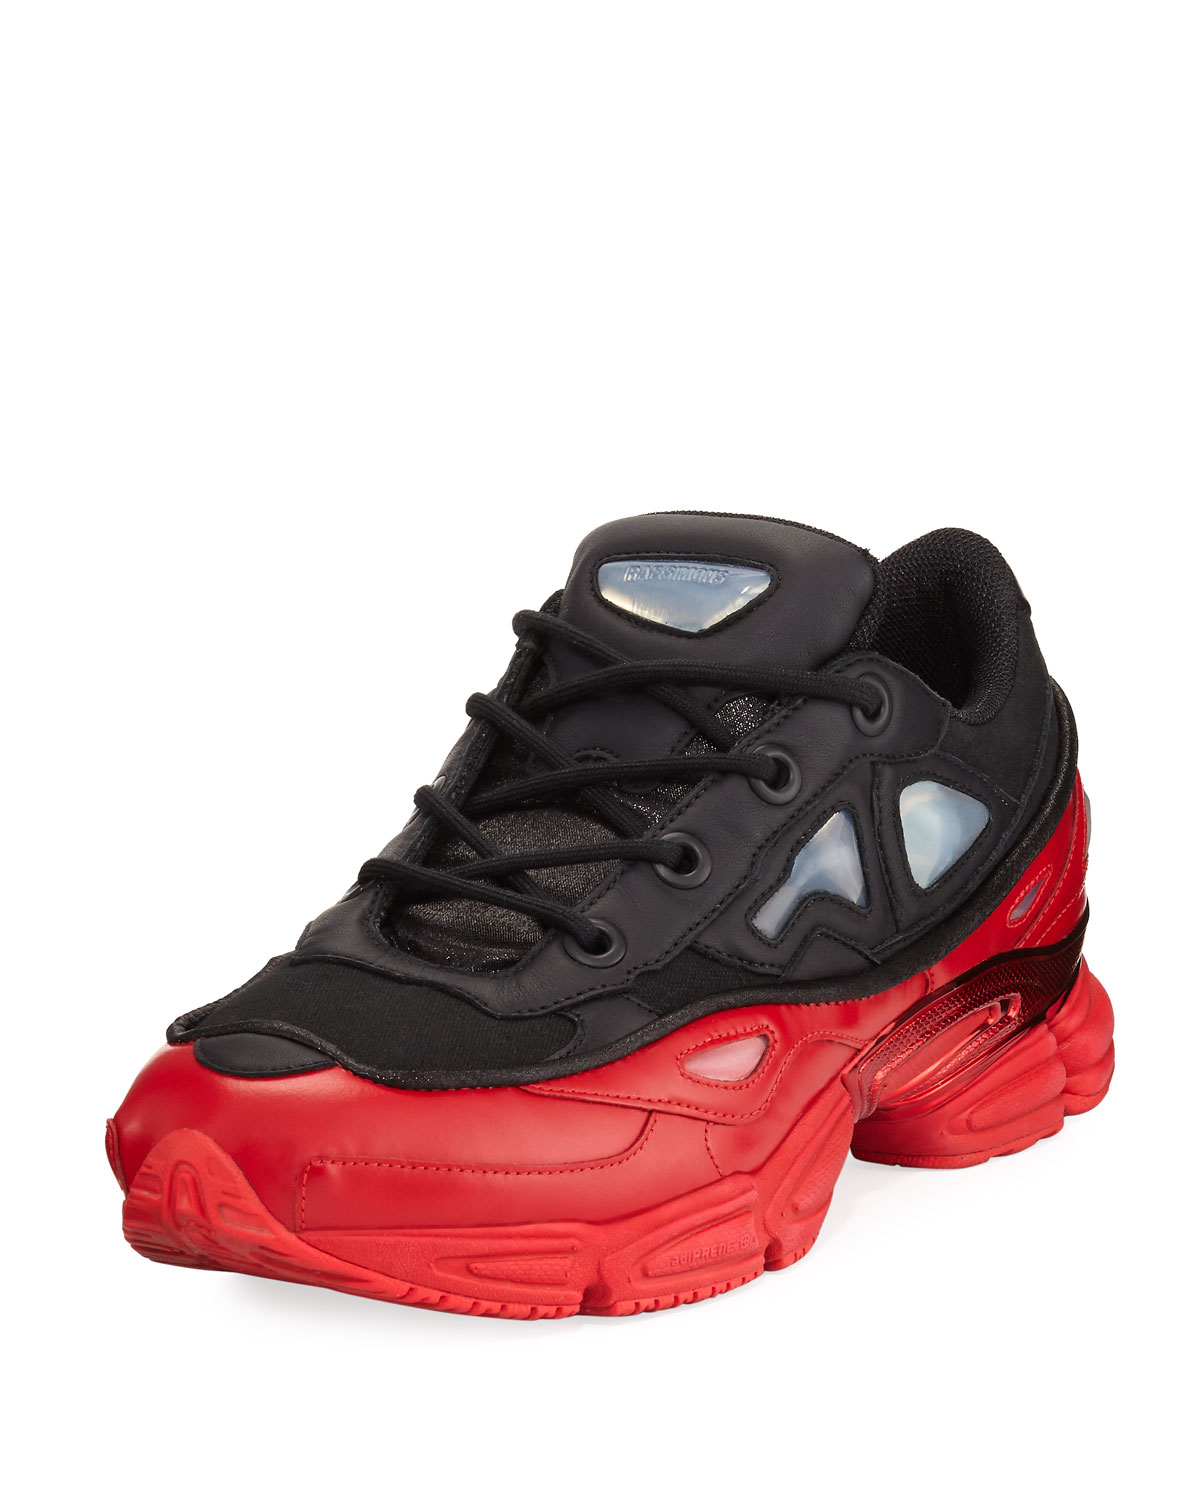 more photos 0e237 df130 adidas by Raf SimonsMens Ozweego III Trainer Sneaker, BlackRed